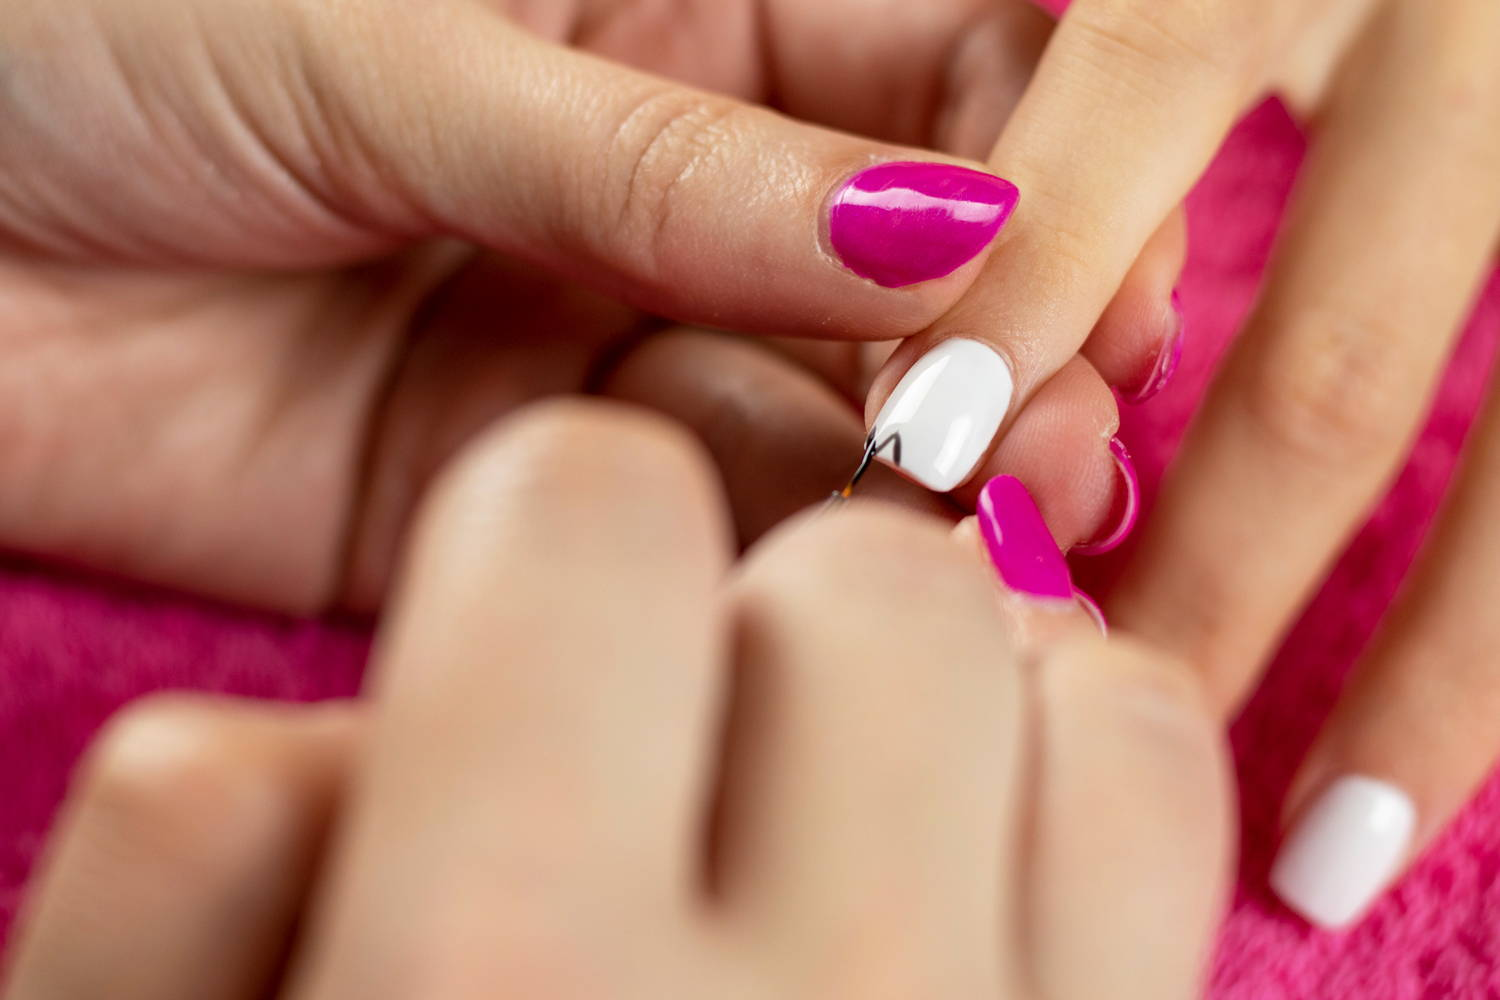 Ghost nail art detail being added to a nail using ORLY Liquid Vinyl